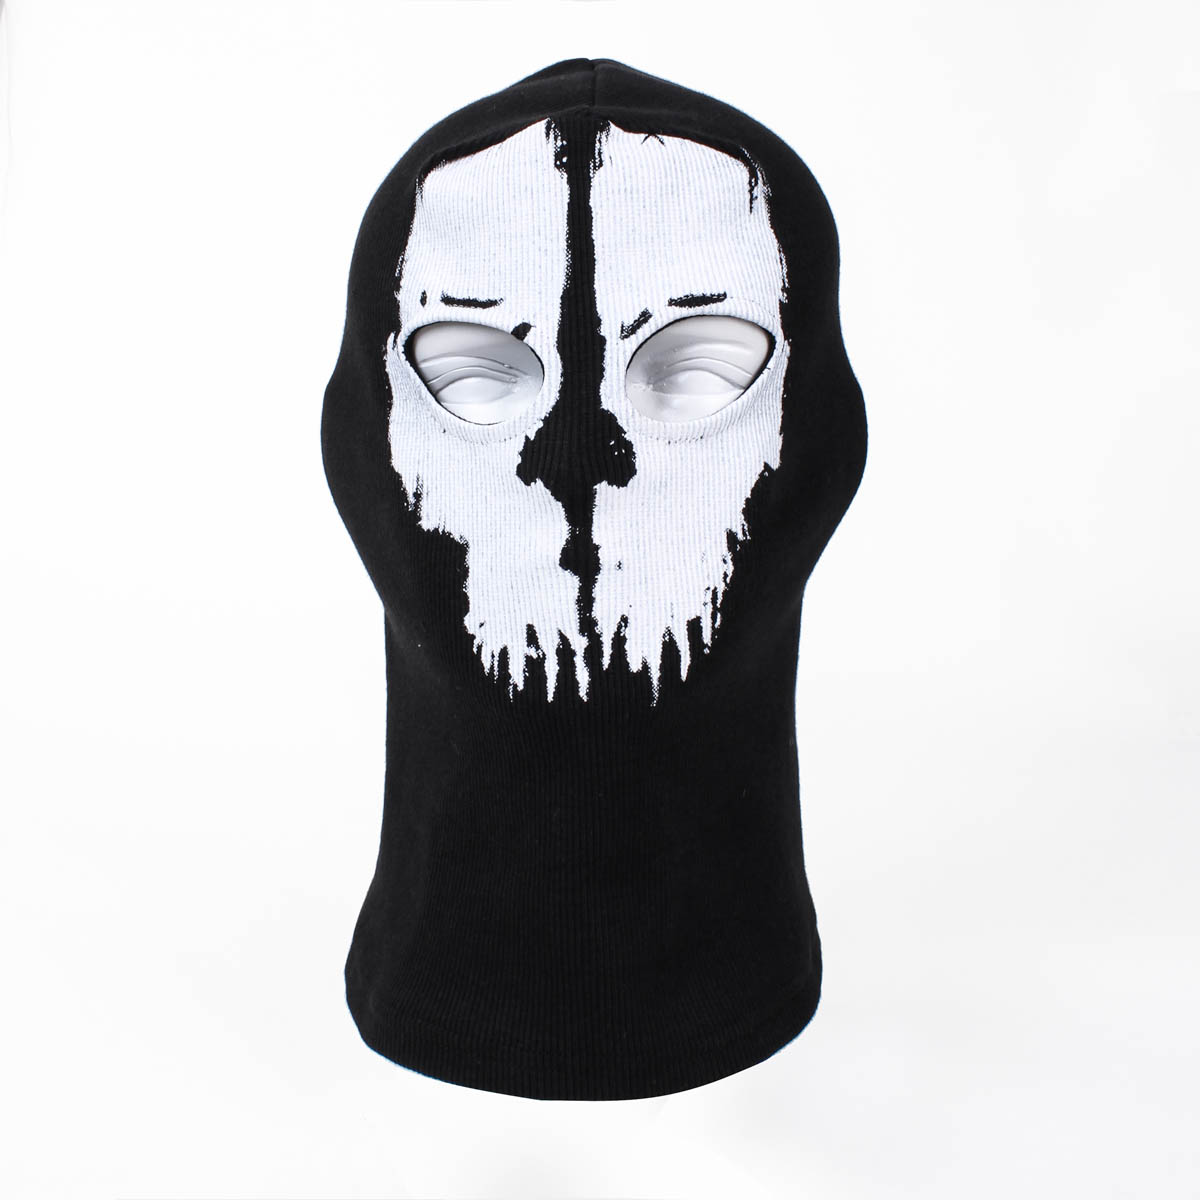 Compare Prices on Ghost Balaclava- Online Shopping/Buy Low Price ...